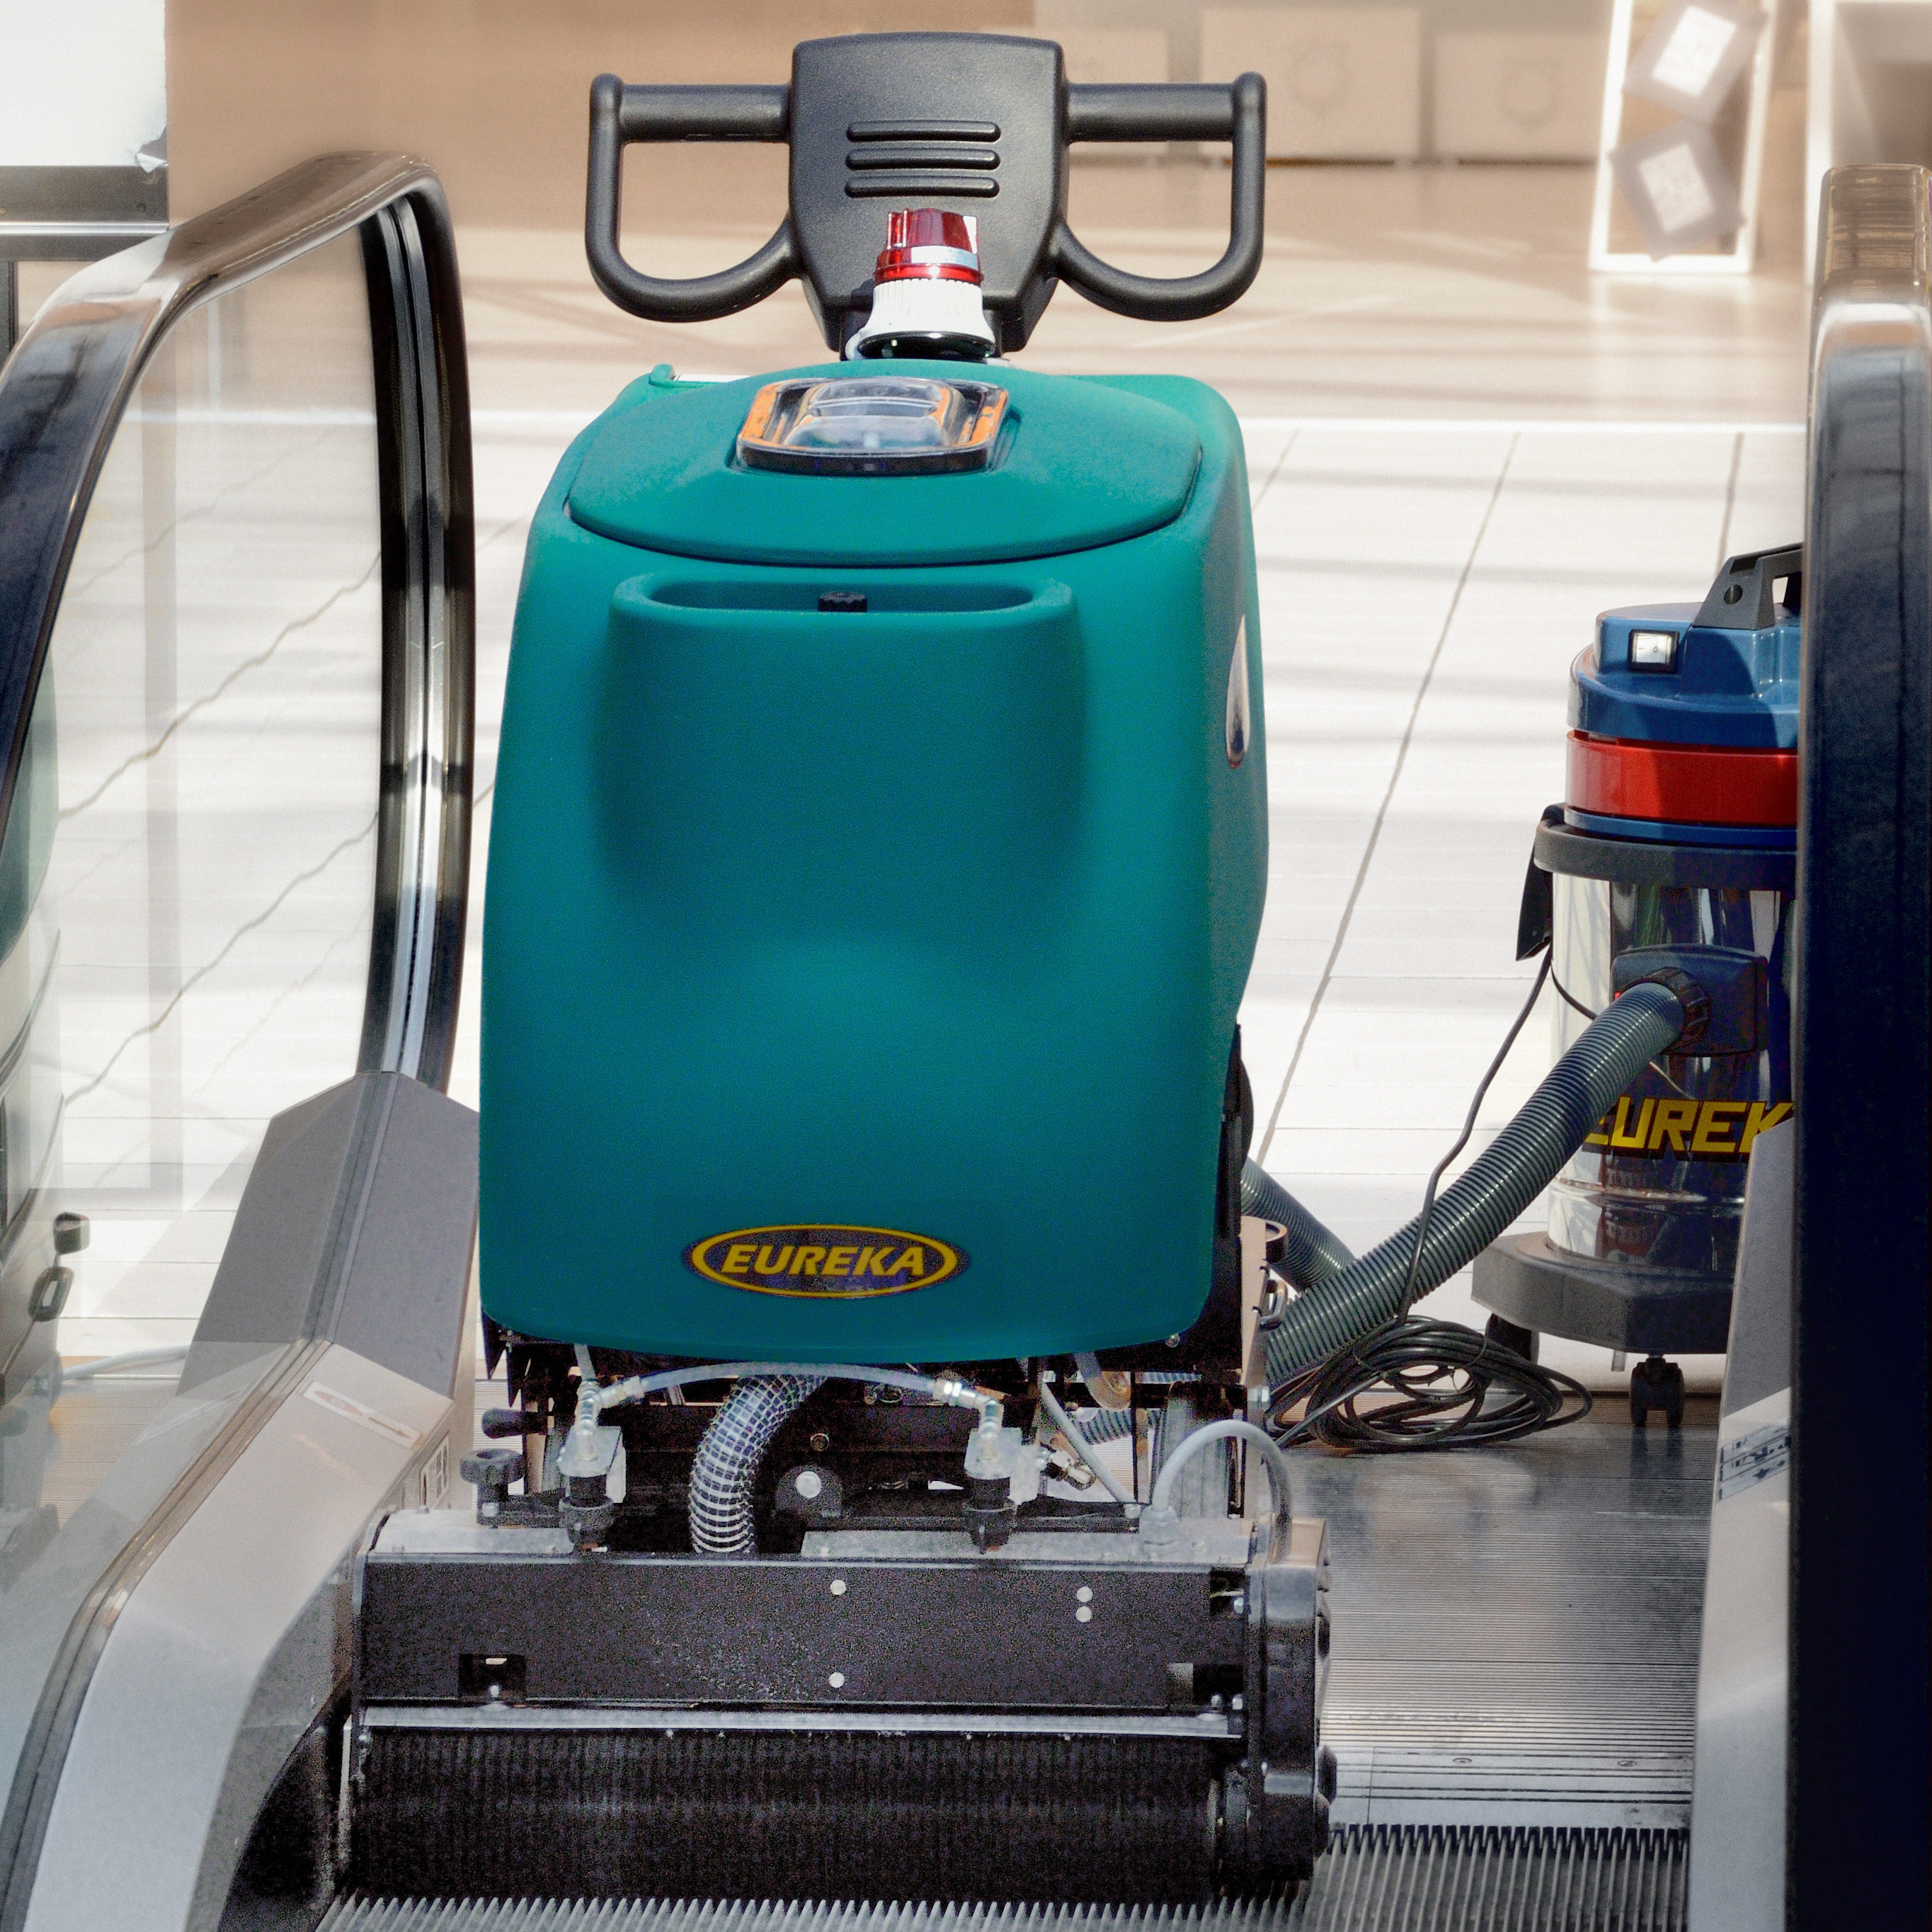 WORK AUTOMATICALLY EC51 ESCALATOR & TRAVELATOR DEEP CLEANER